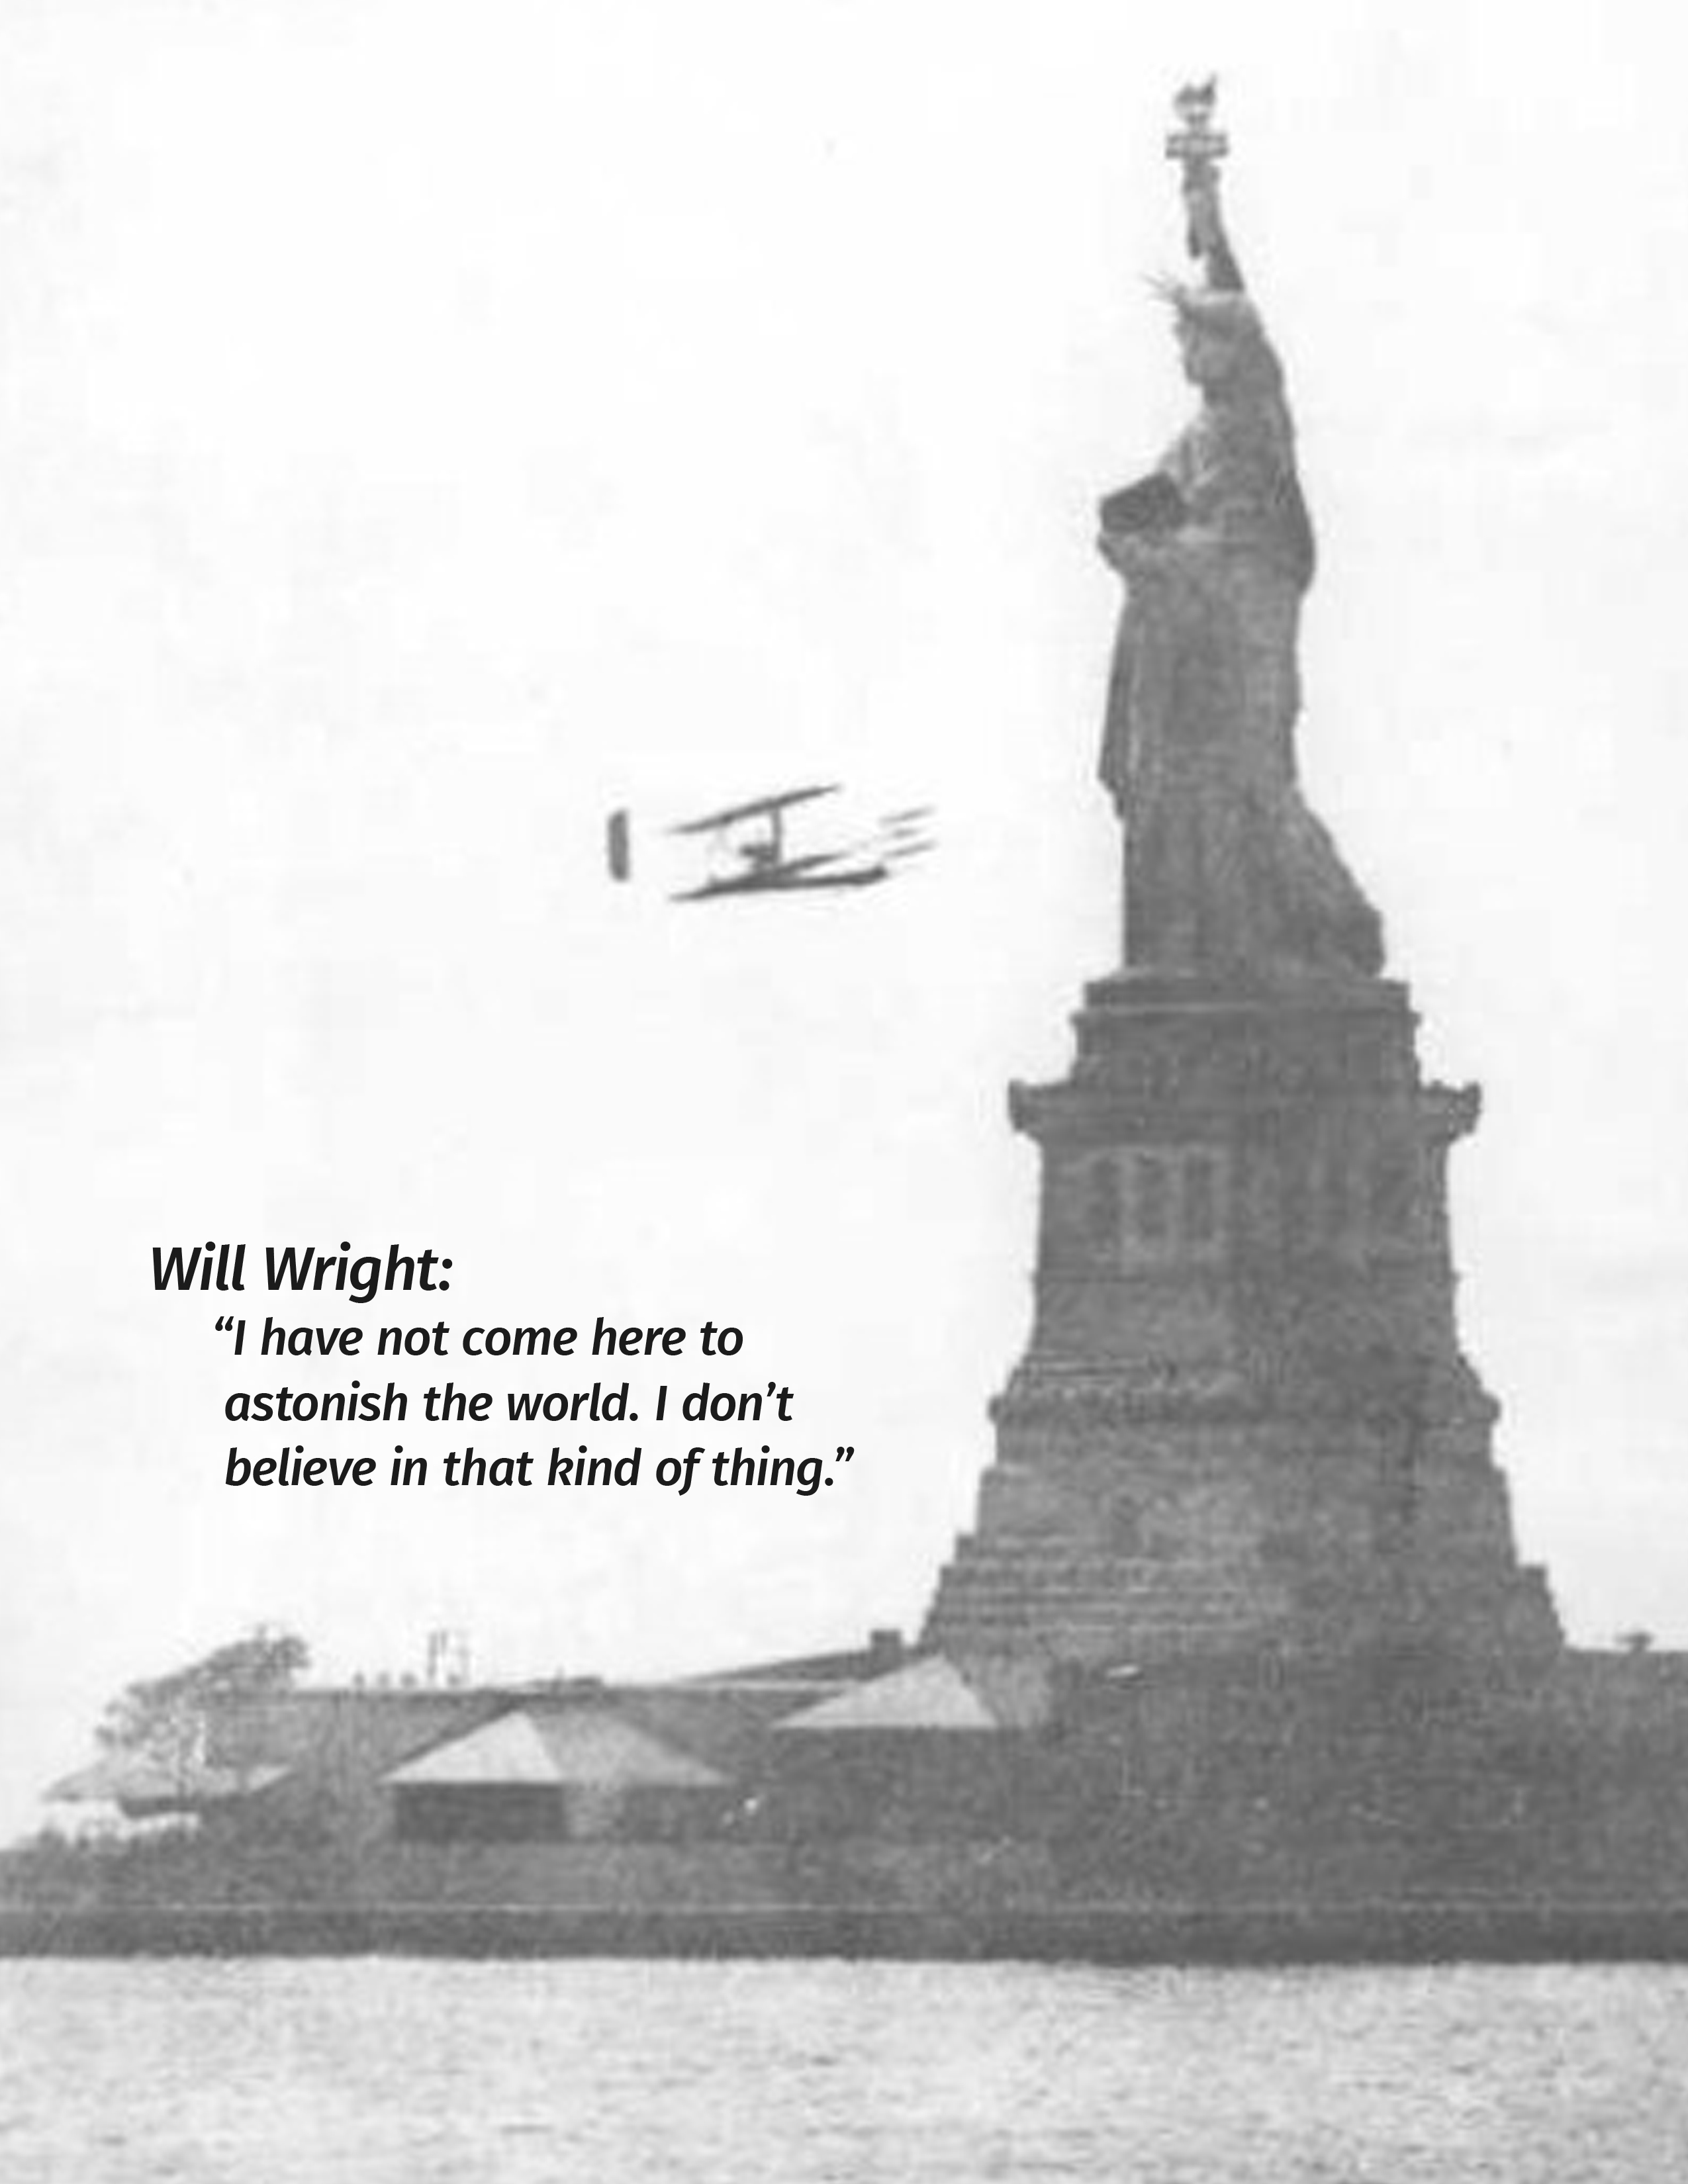 Will Wright circles the Statue of Liberty in 1909